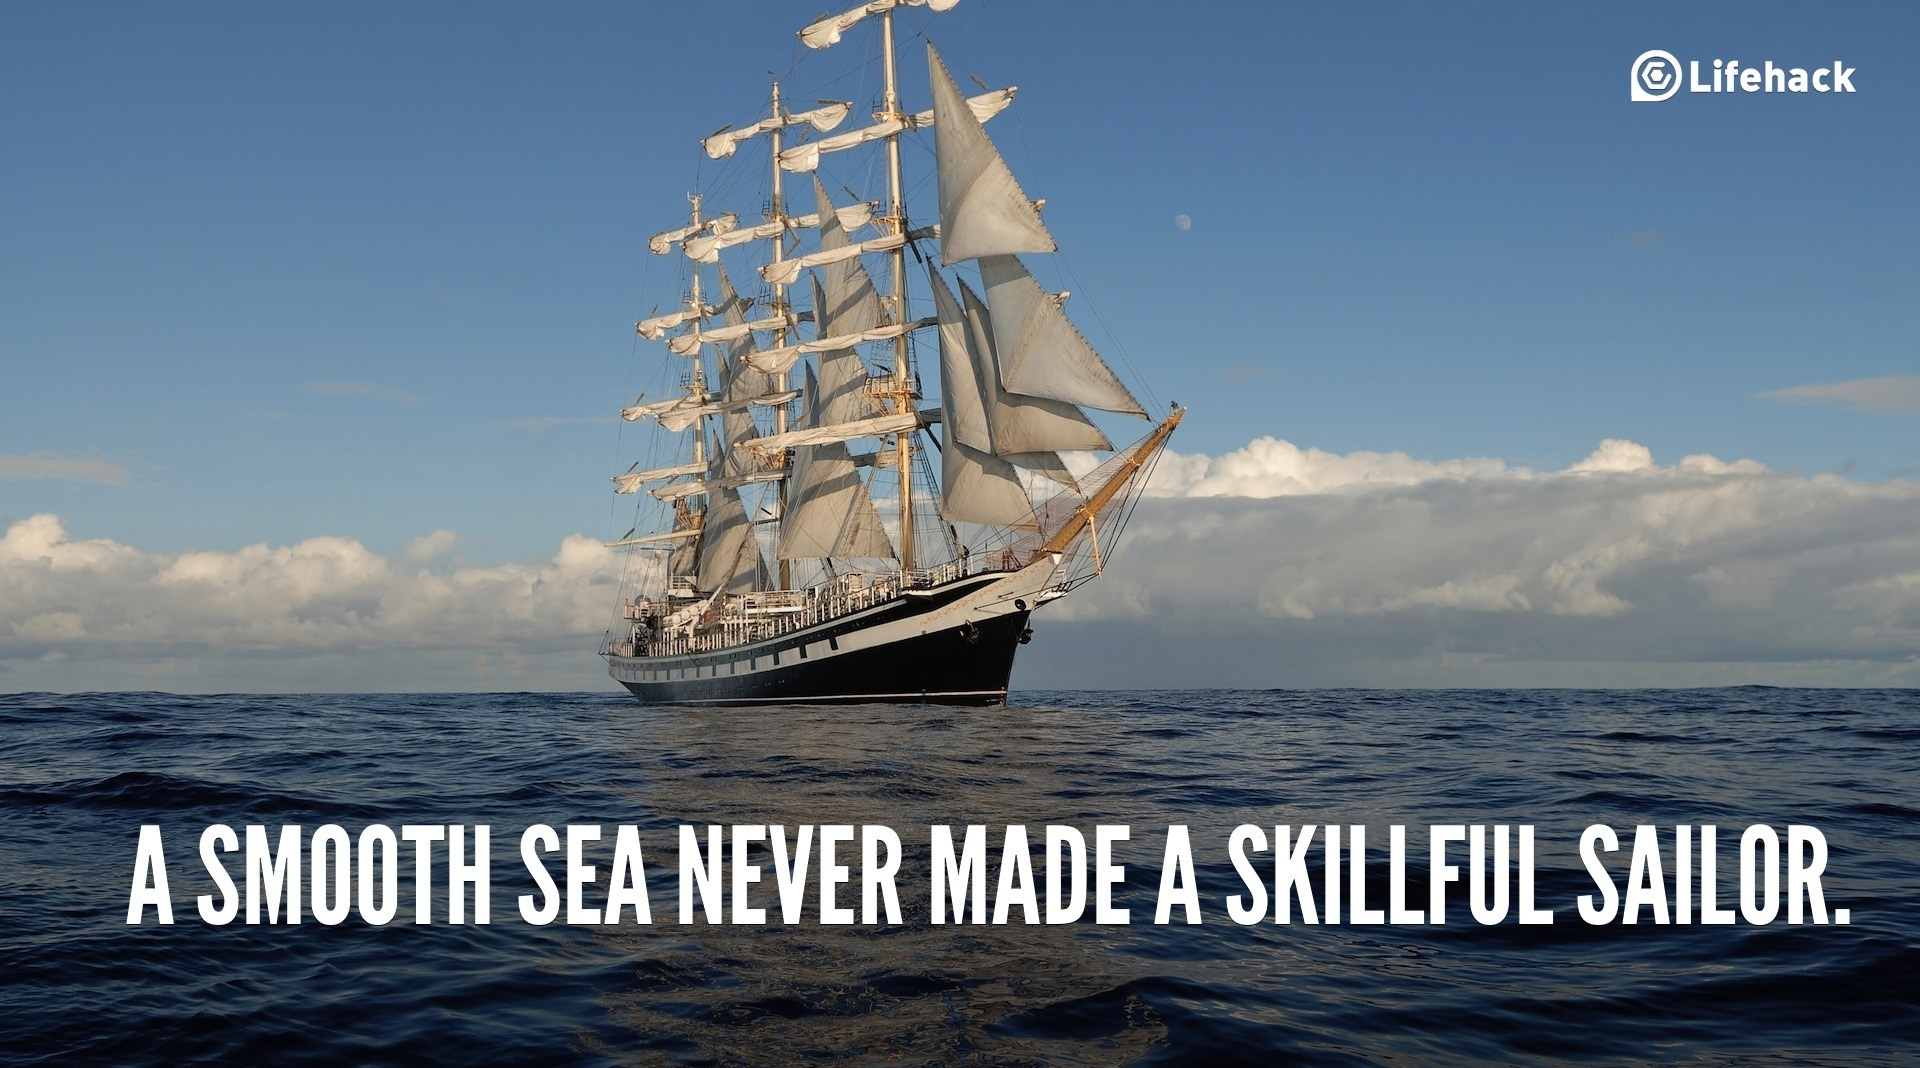 30sec Tip: A Smooth Sea Never Made a Skillful Sailor